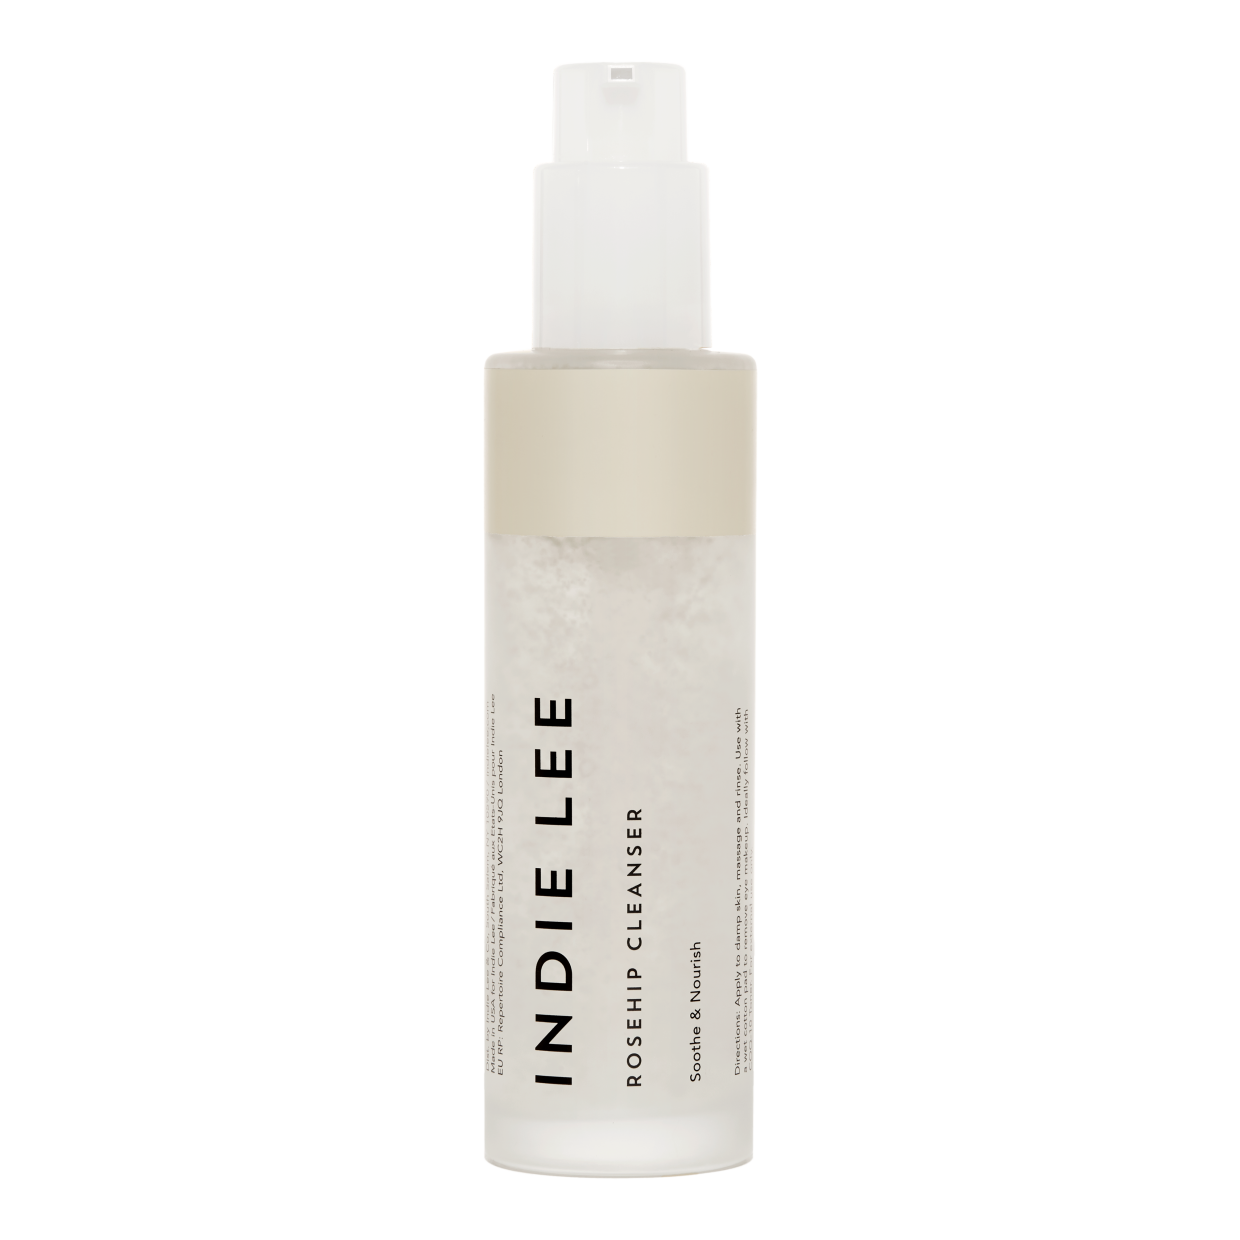 Rosehip Cleanser Soothe Skin, Remove MakeUp